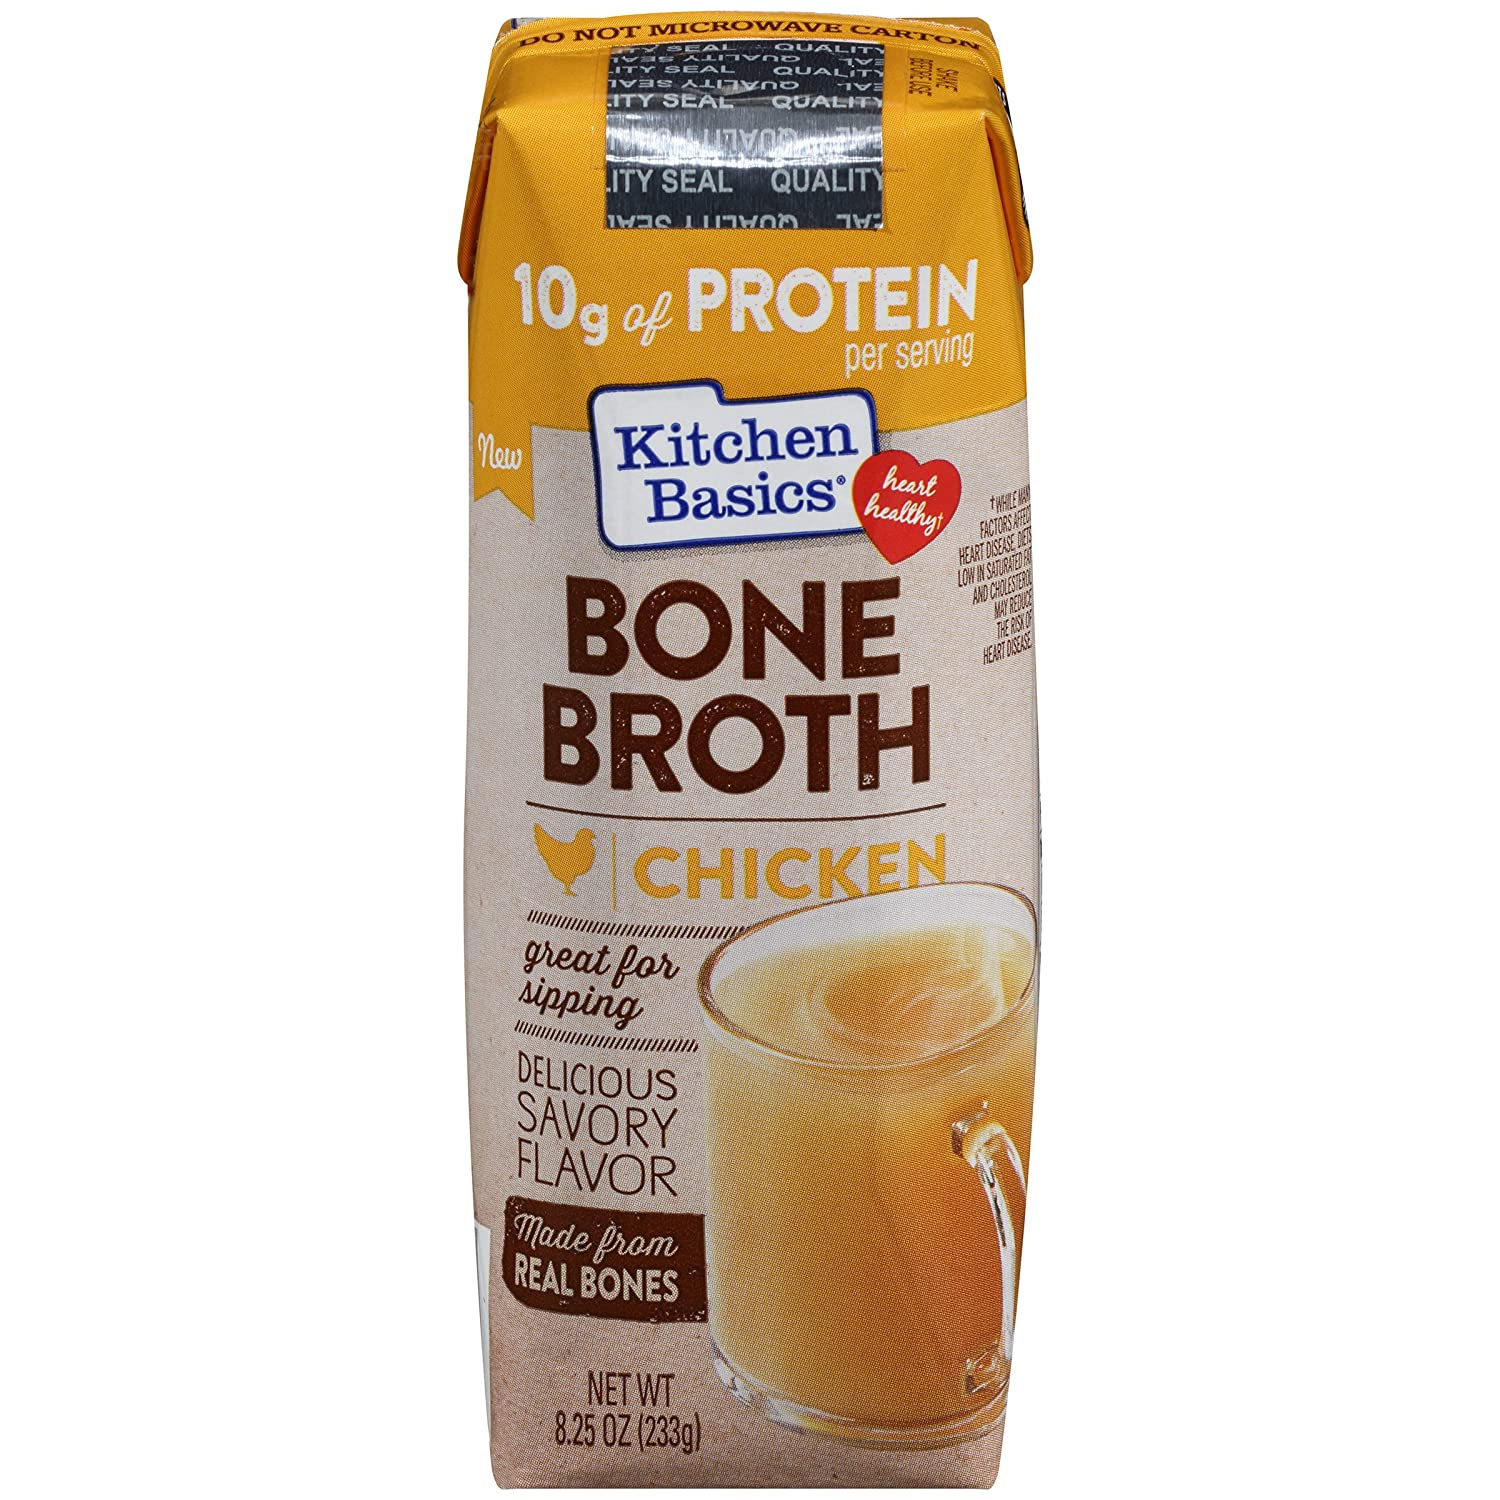 Kitchen Basics Original Chicken Bone Broth, 8.25 oz